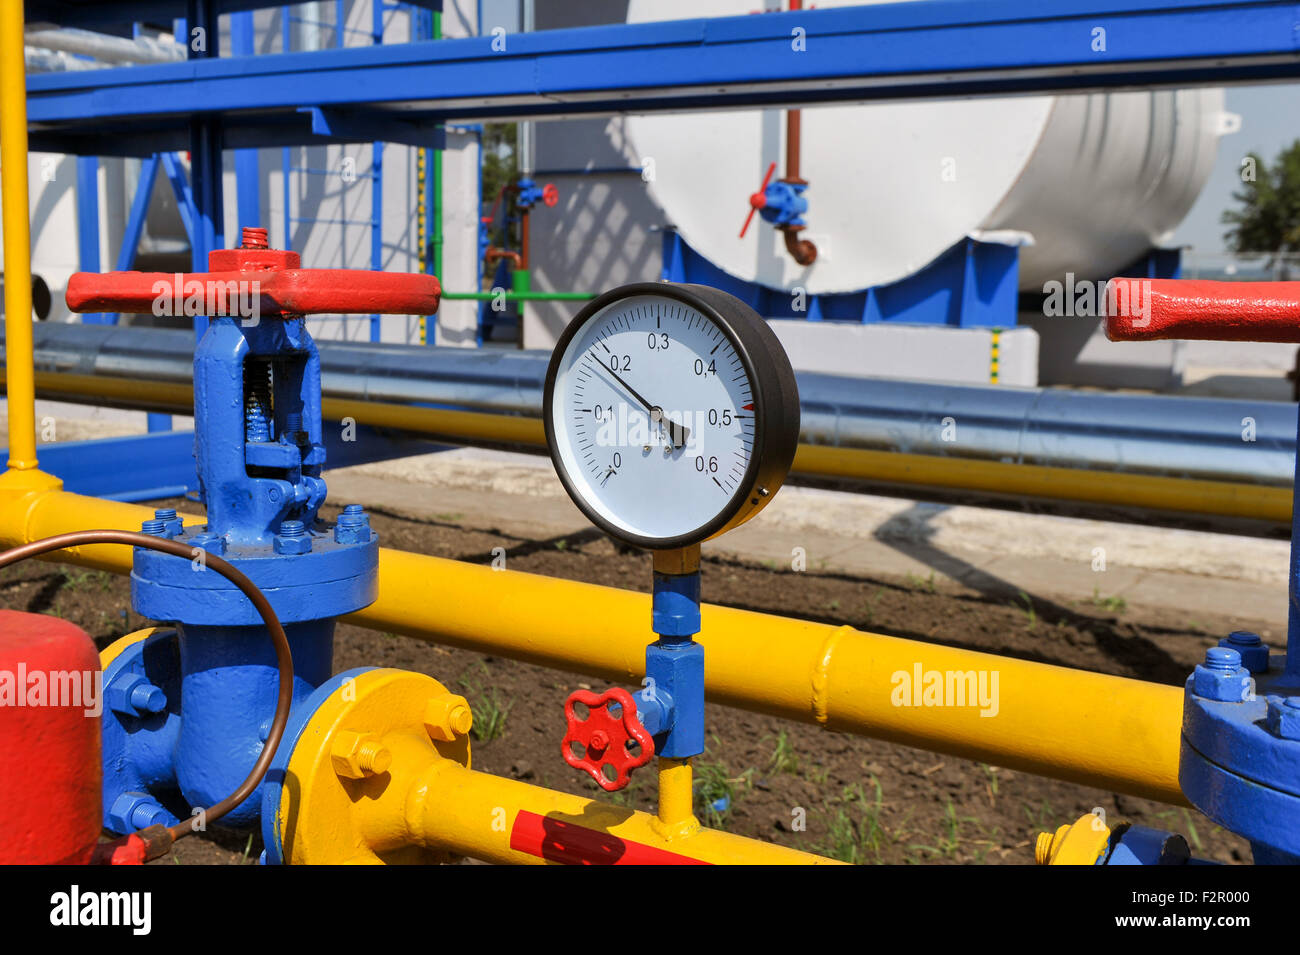 Pressure meter and red faucet with steel yellow pipe in natural gas treatment plant in bright sunny summer day - Stock Image